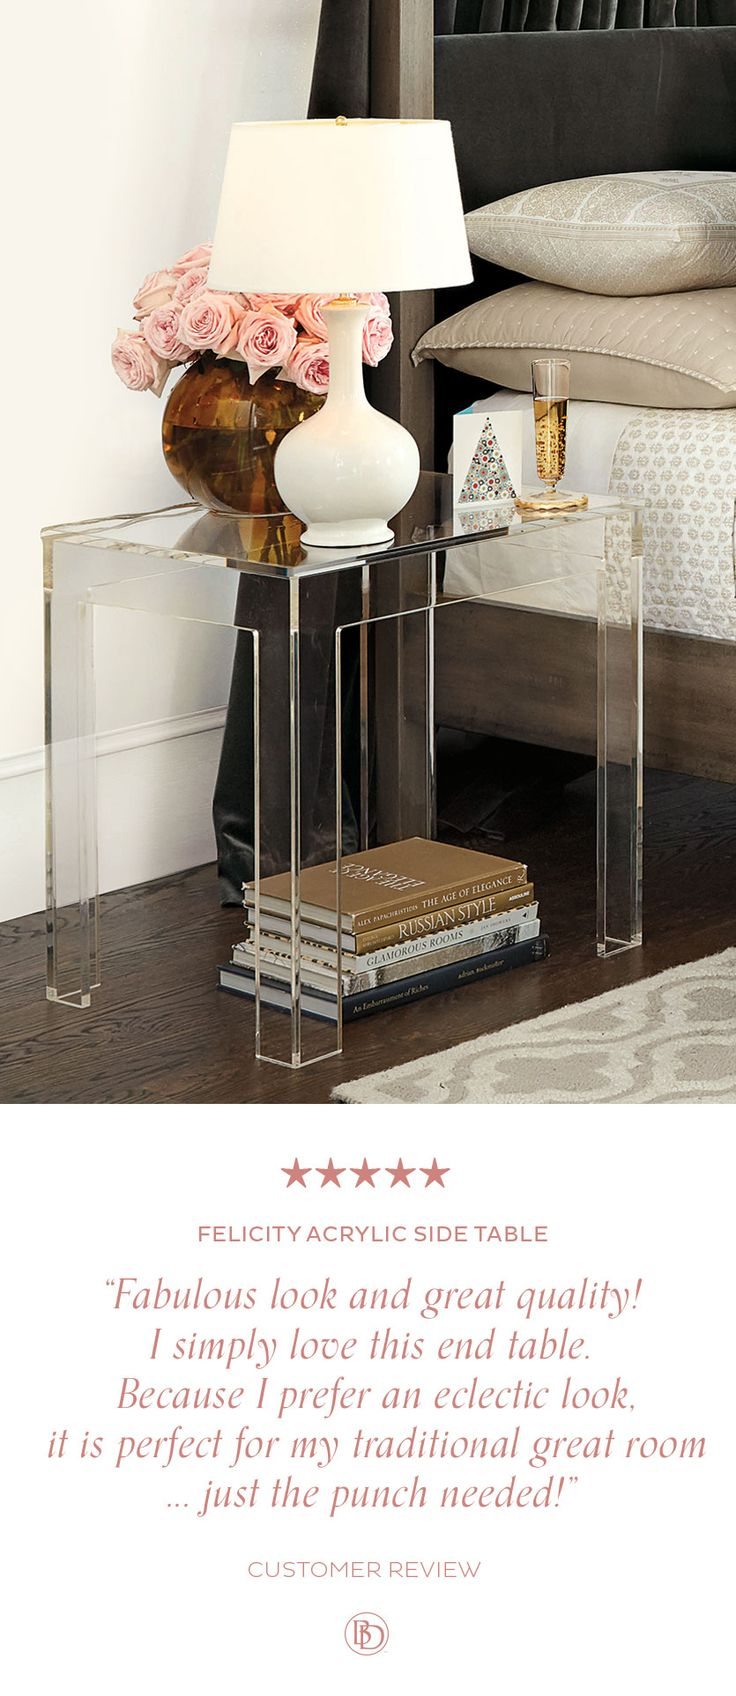 Felicity Acrylic Side Table